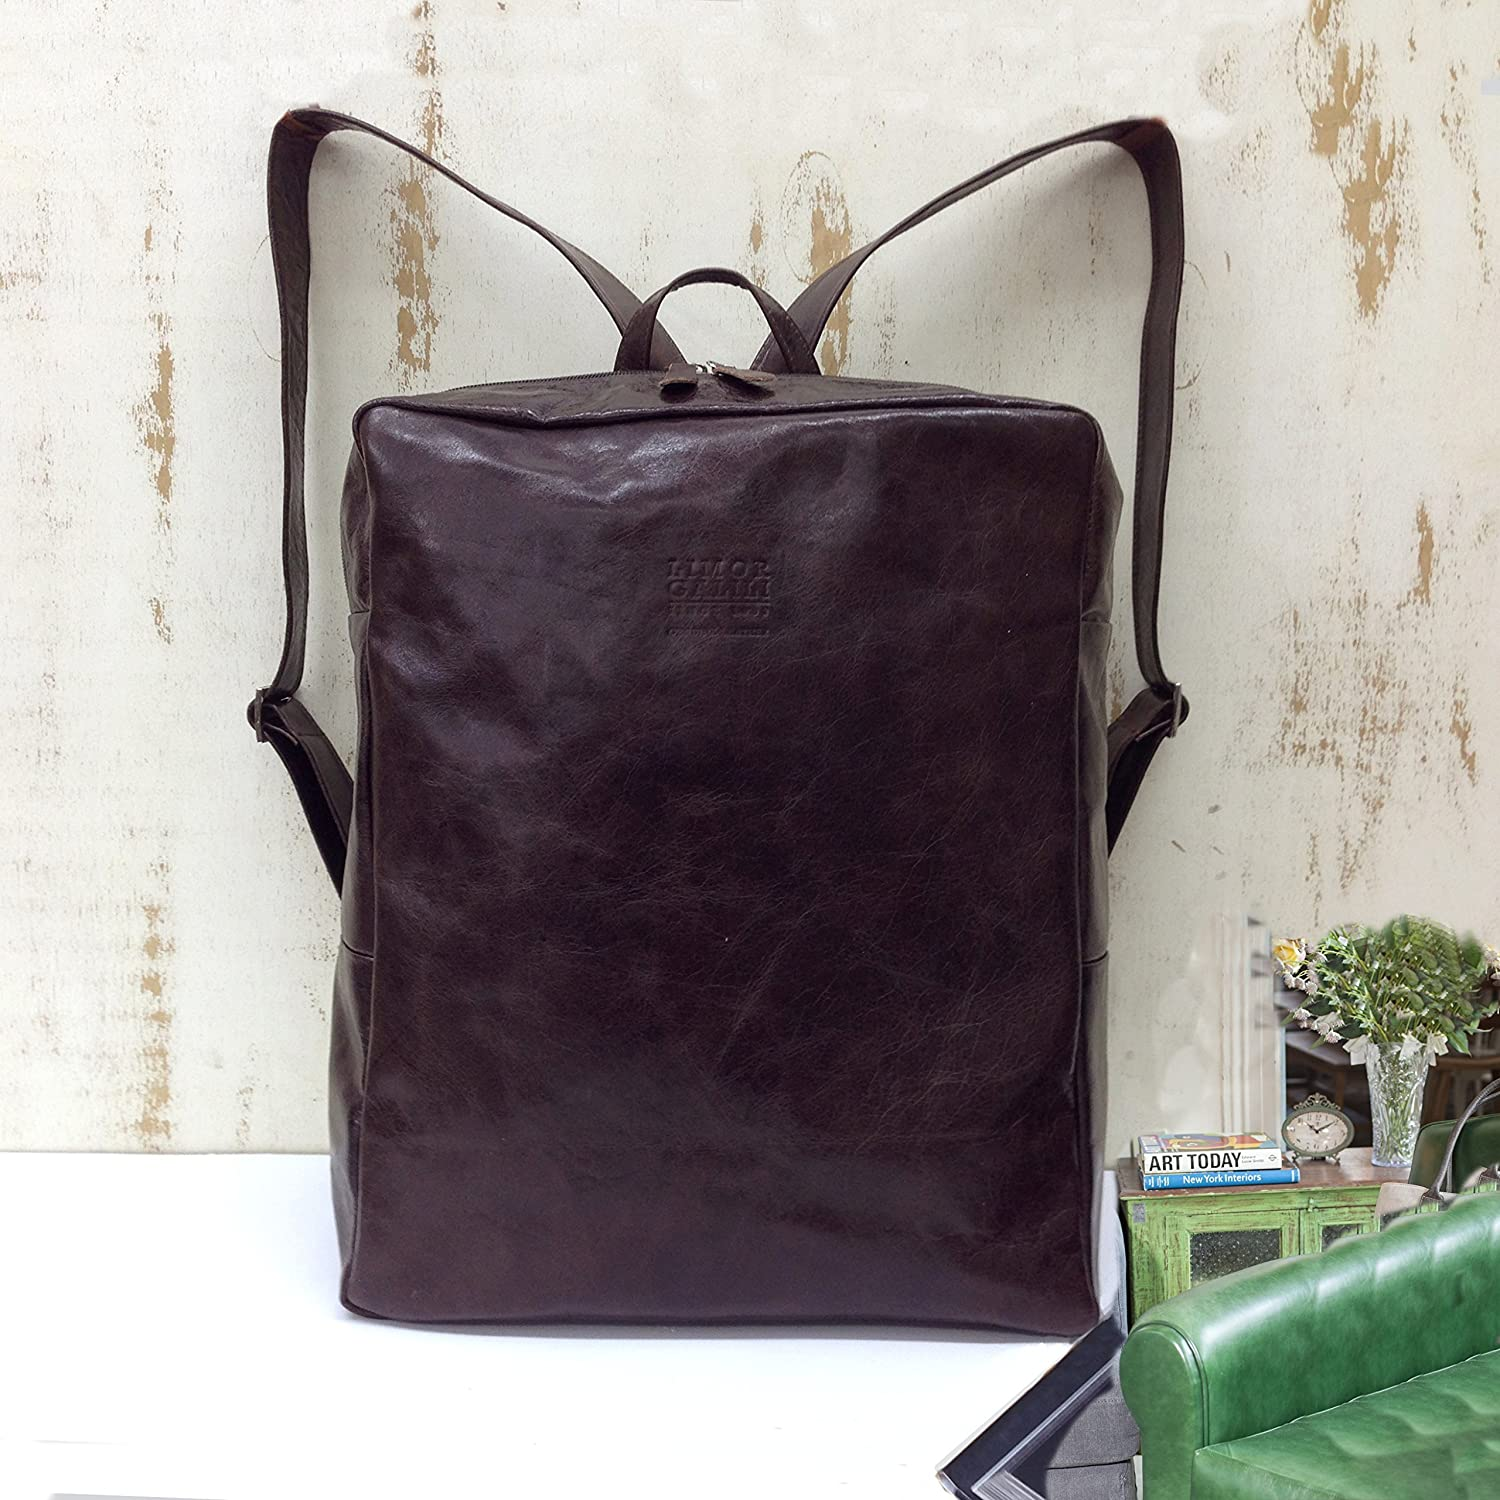 1d34777f77 Amazon.com  Shiny brown travel work leather bag with front pocket casual  everyday 15 15.6in laptop backpack  Handmade